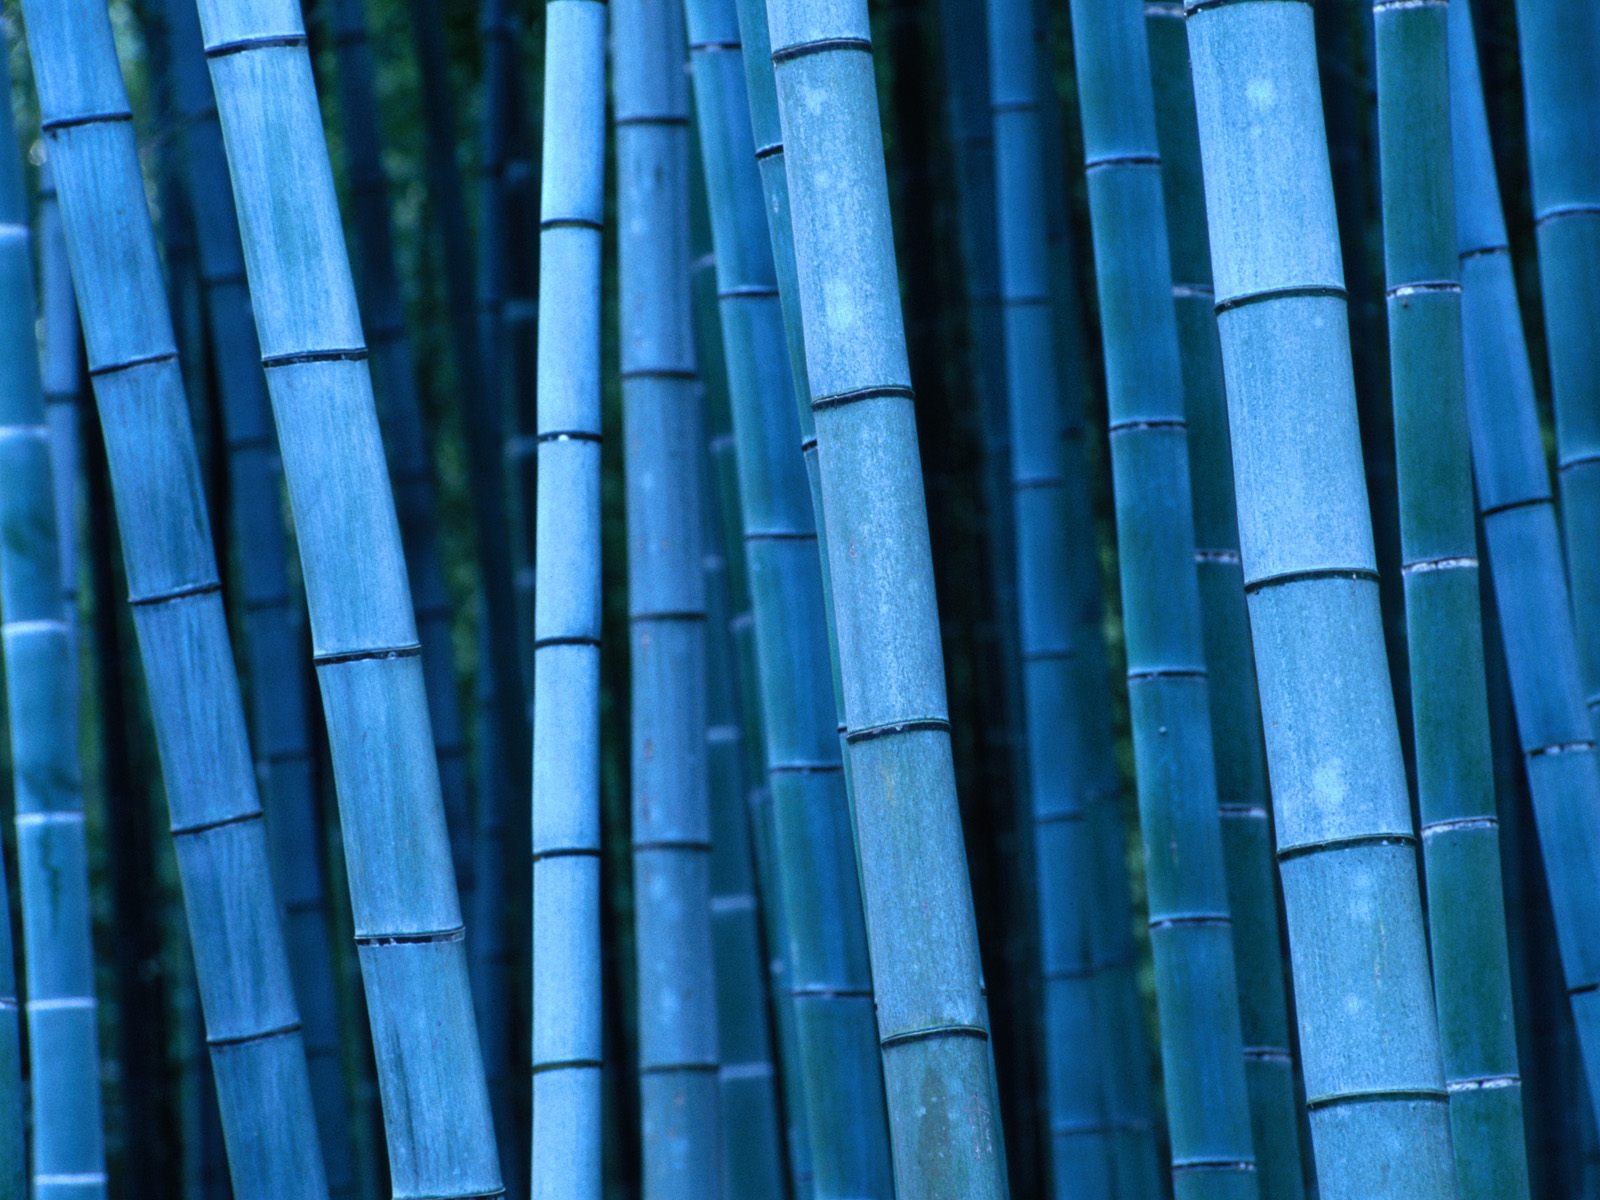 1600x1200 Blue bamboo desktop wallpapers and stock photos